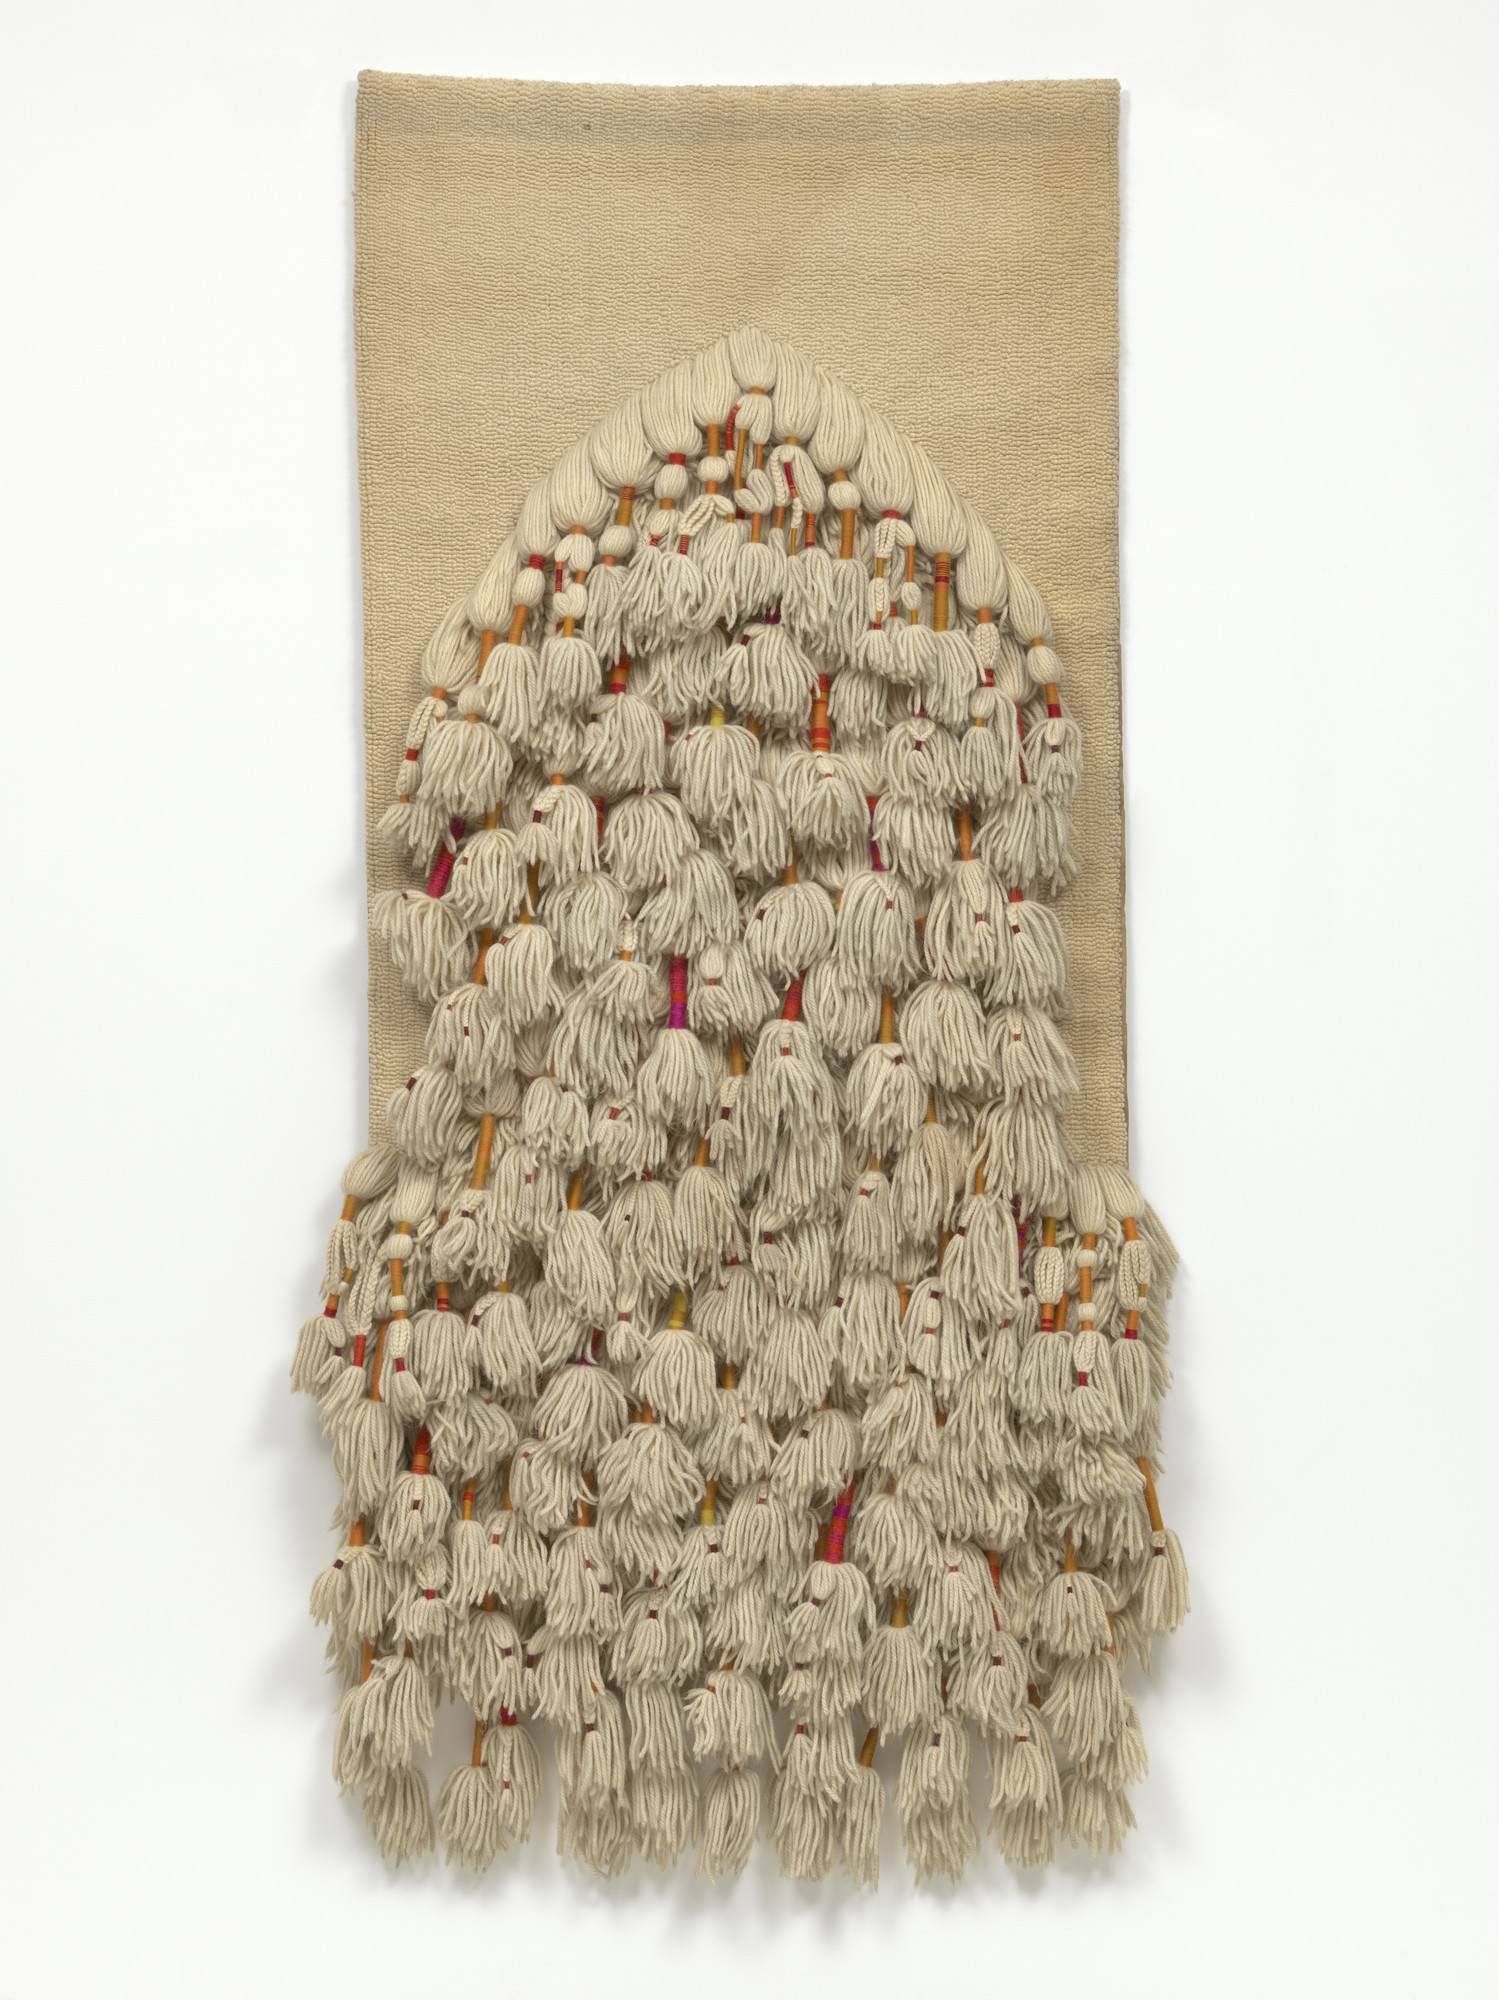 Sheila Hicks. Prayer Rug. 1965